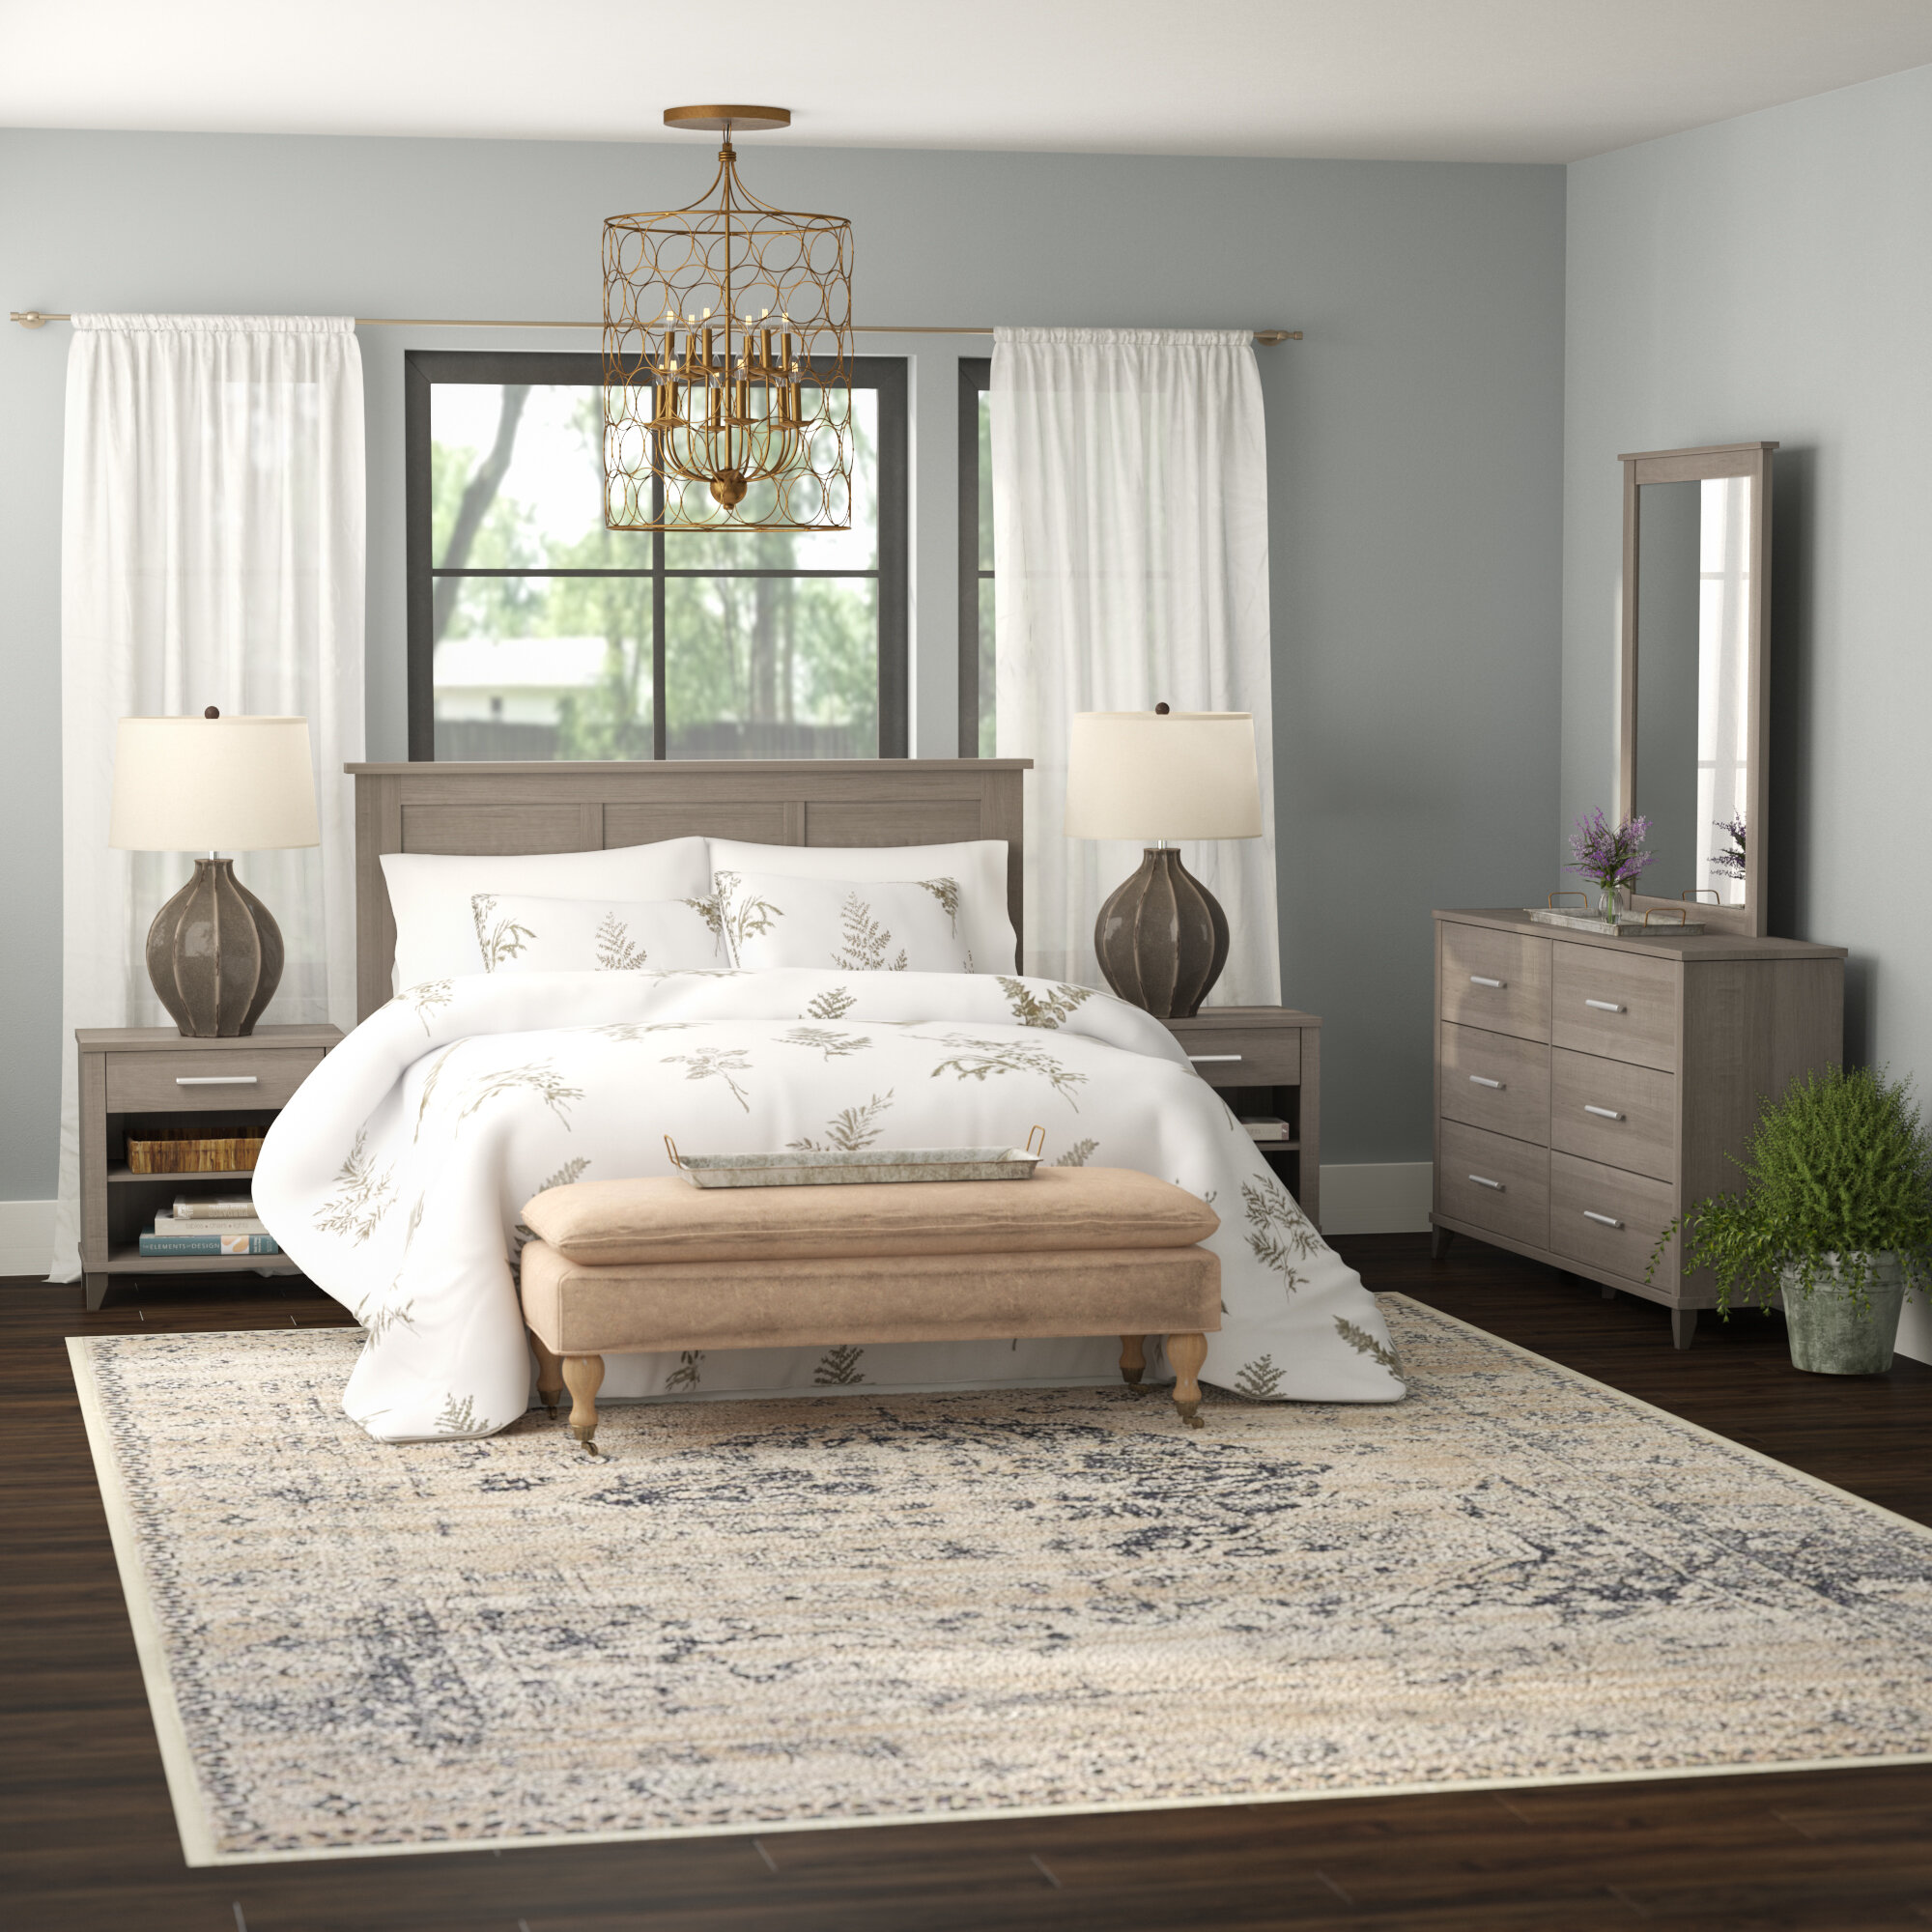 Laurel Foundry Modern Farmhouse Valencia 5 Piece Bedroom Set Reviews Wayfair